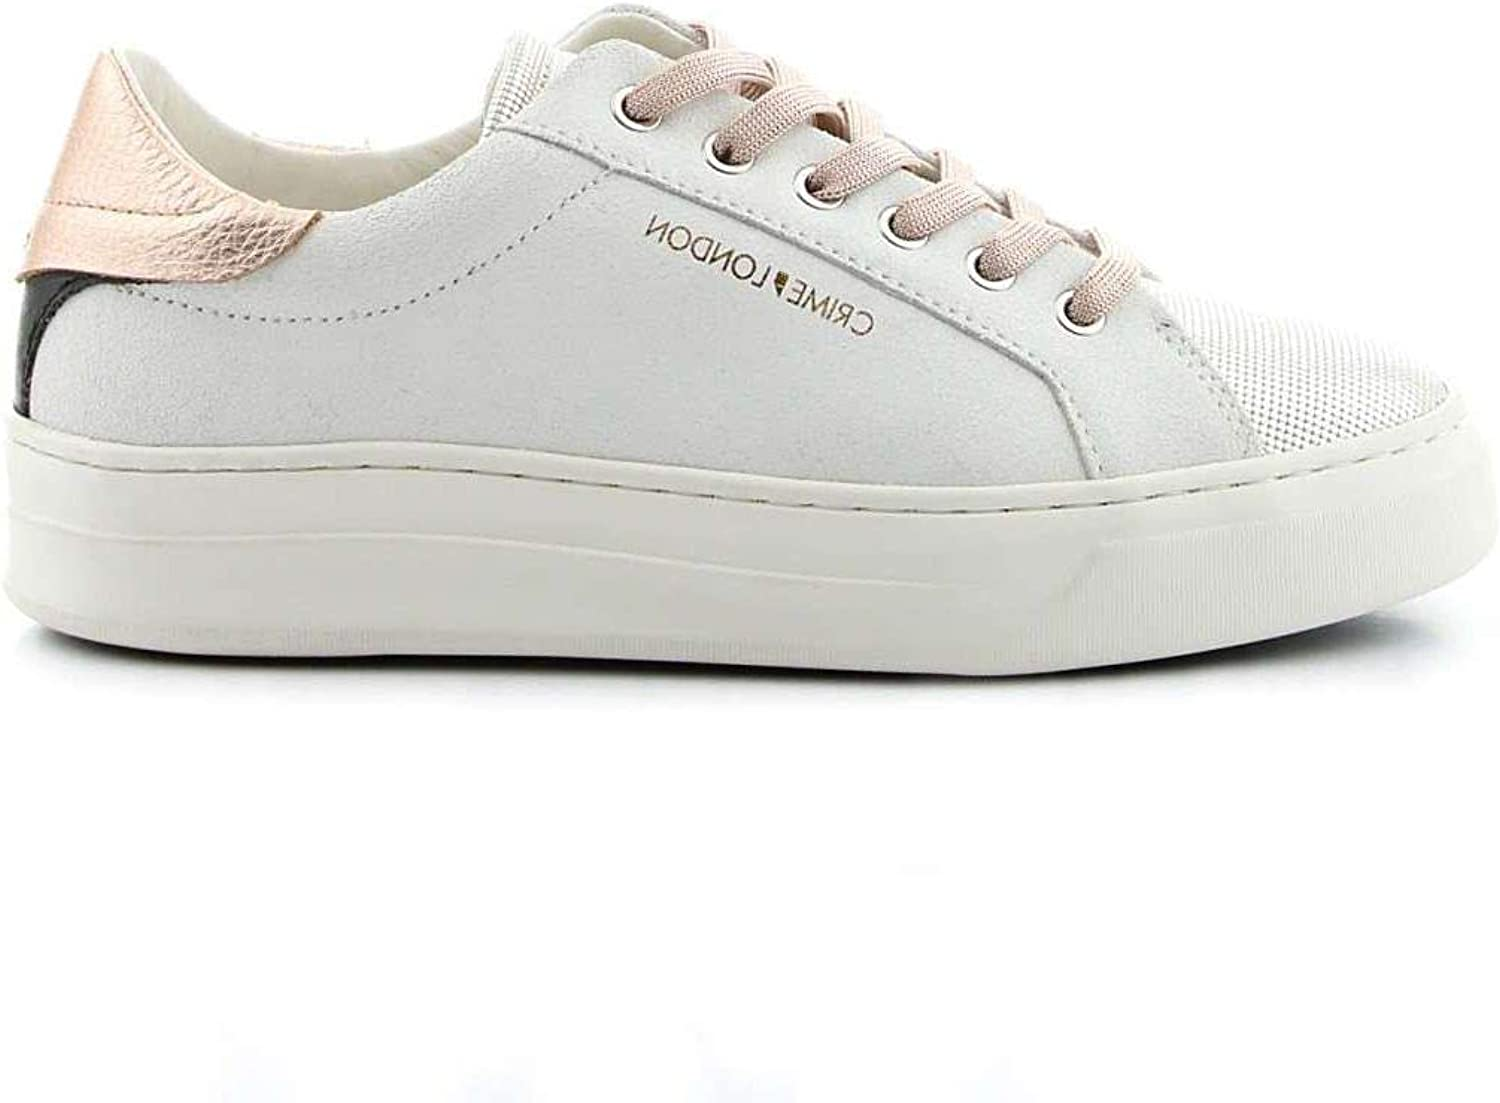 Crime London Women's 25632 White Leather Sneakers